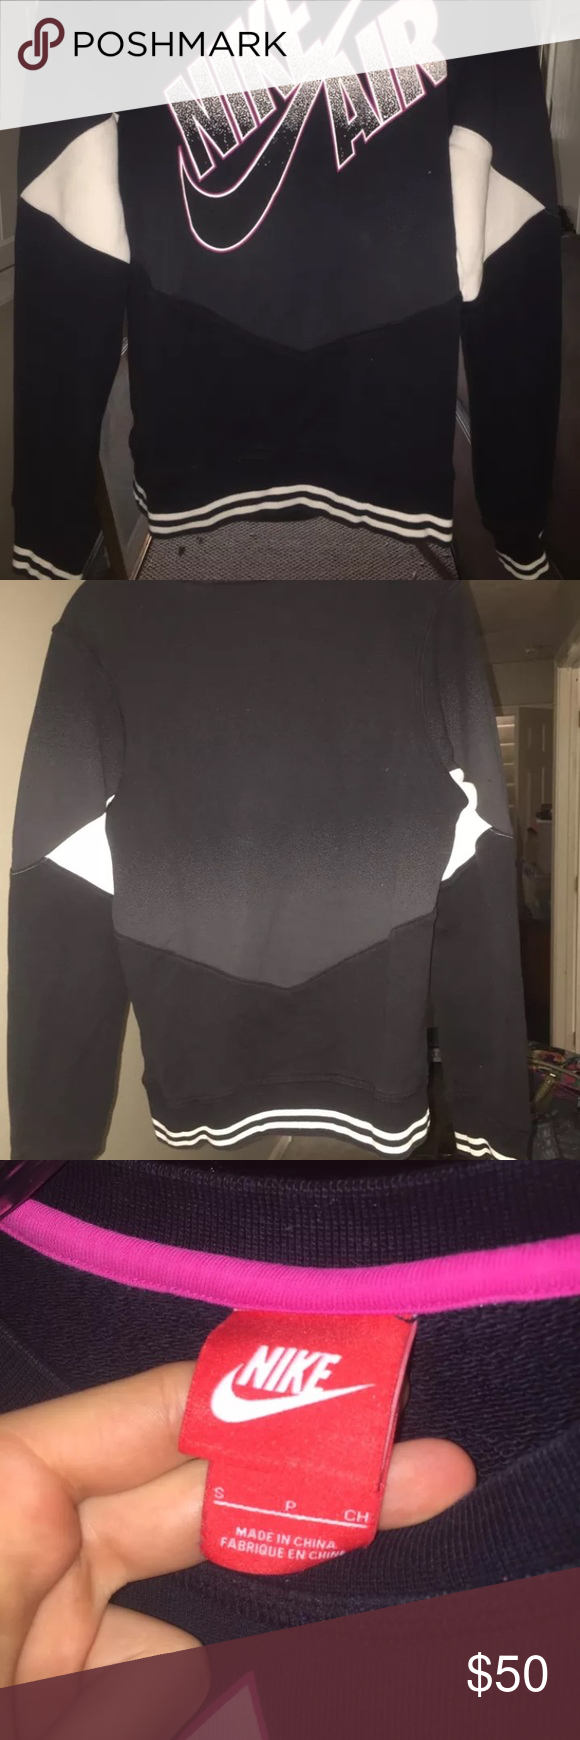 NWOT Men's Nike Crewneck !!! Men's size small fits women's s/m super comfy!! No fuzz on inside so it can be worn in the summer without getting too hot but also keeps you warm in the winter :) Nike Shirts Sweatshirts & Hoodies